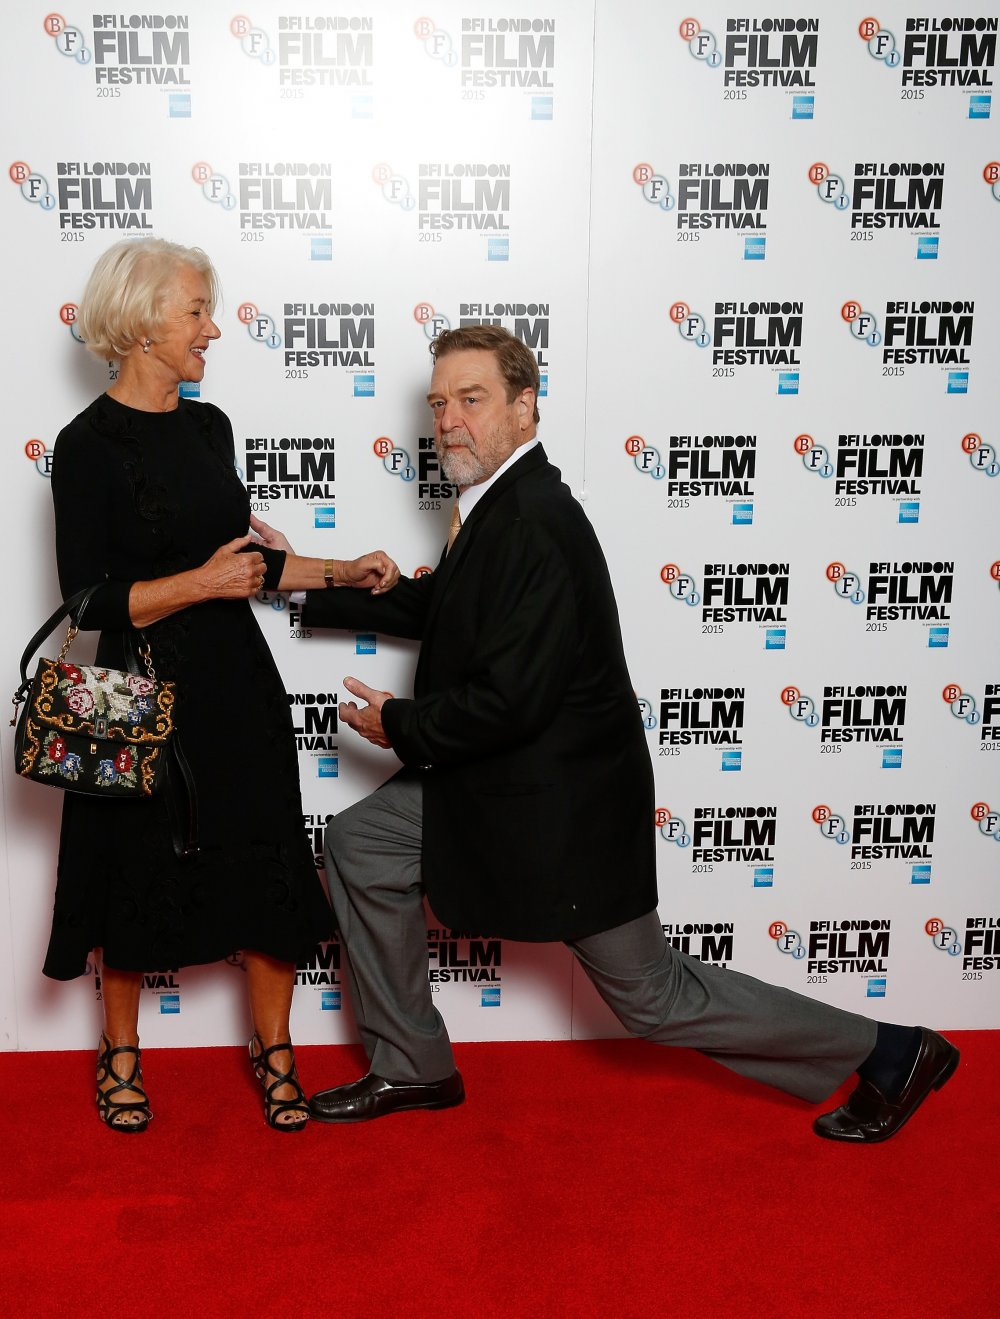 Actors Helen Mirren and John Goodman attend the Trumbo photocall during the BFI London Film Festival